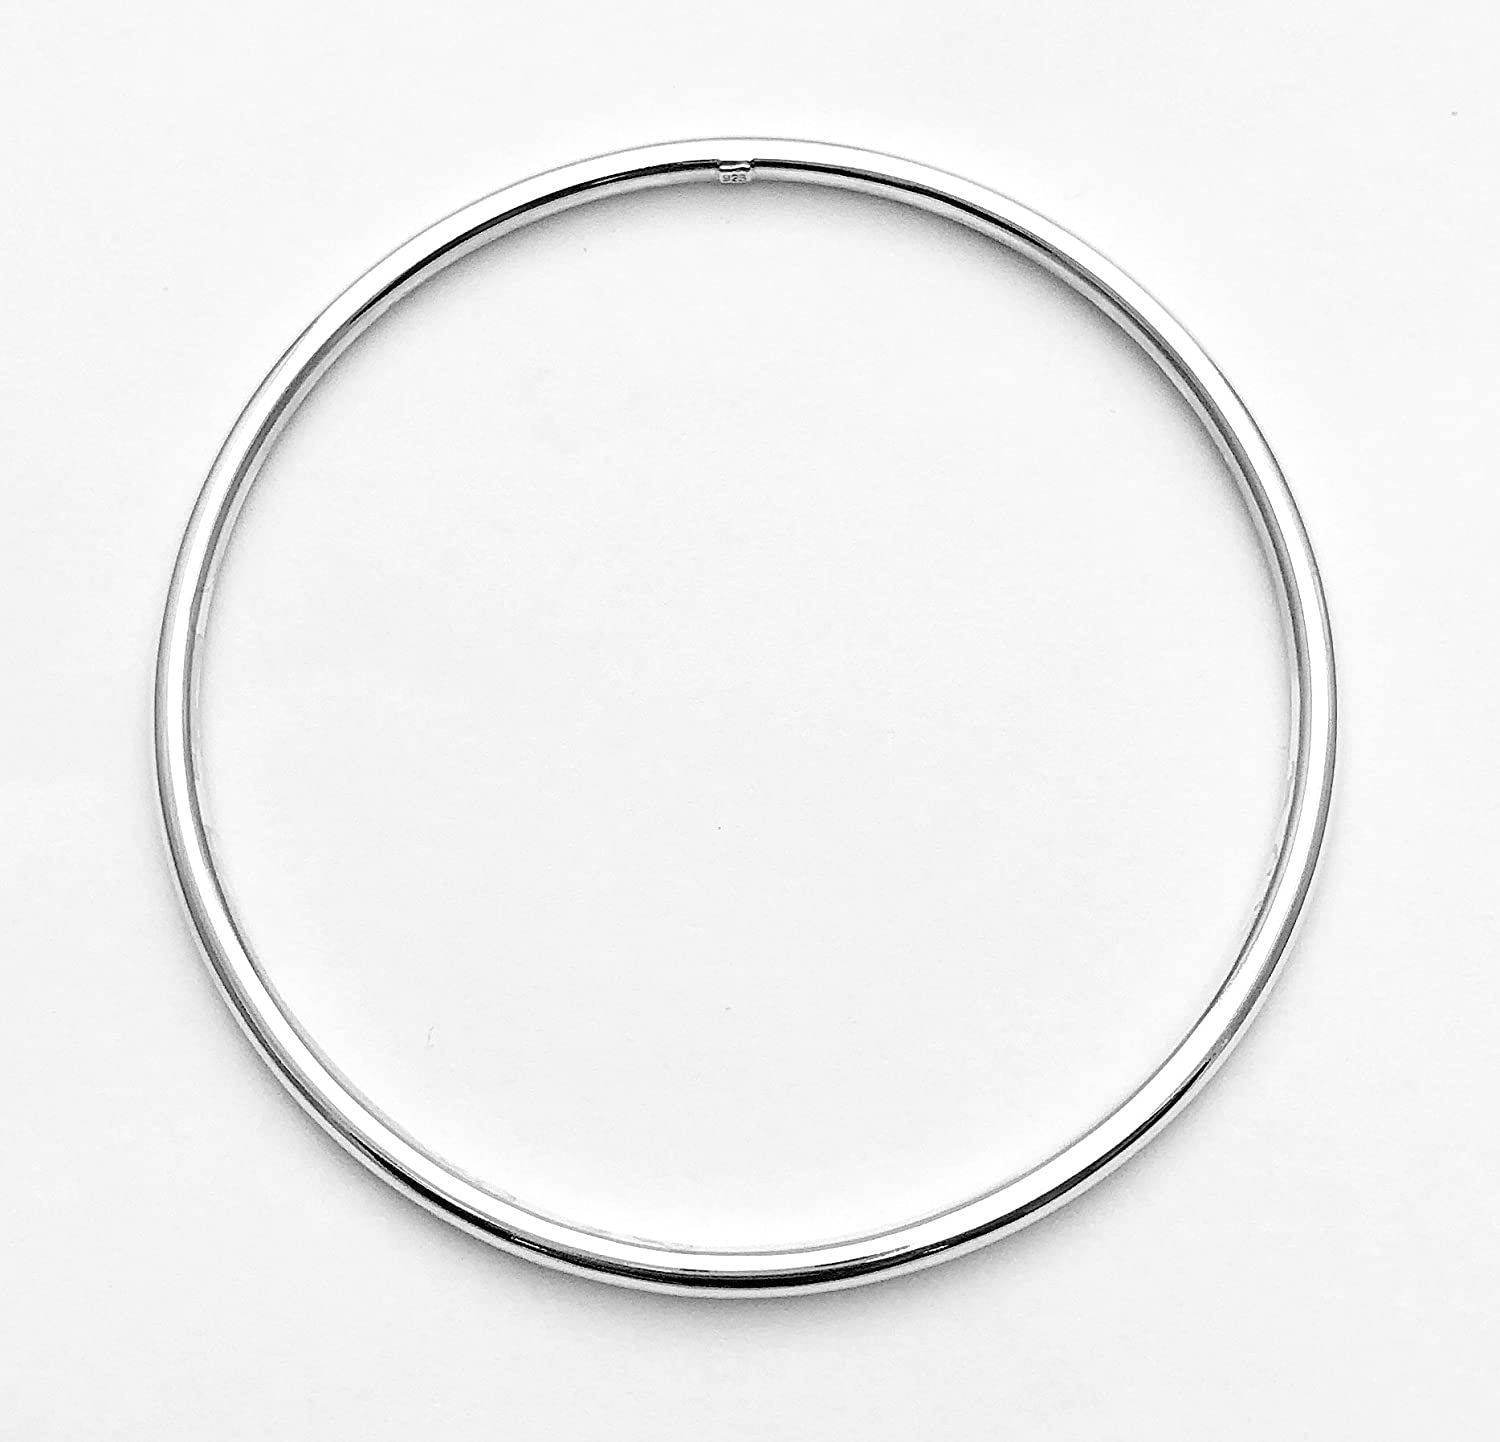 Silver Bangle Silver Bangle 925 Sterling Silver Inner Size 65 mm